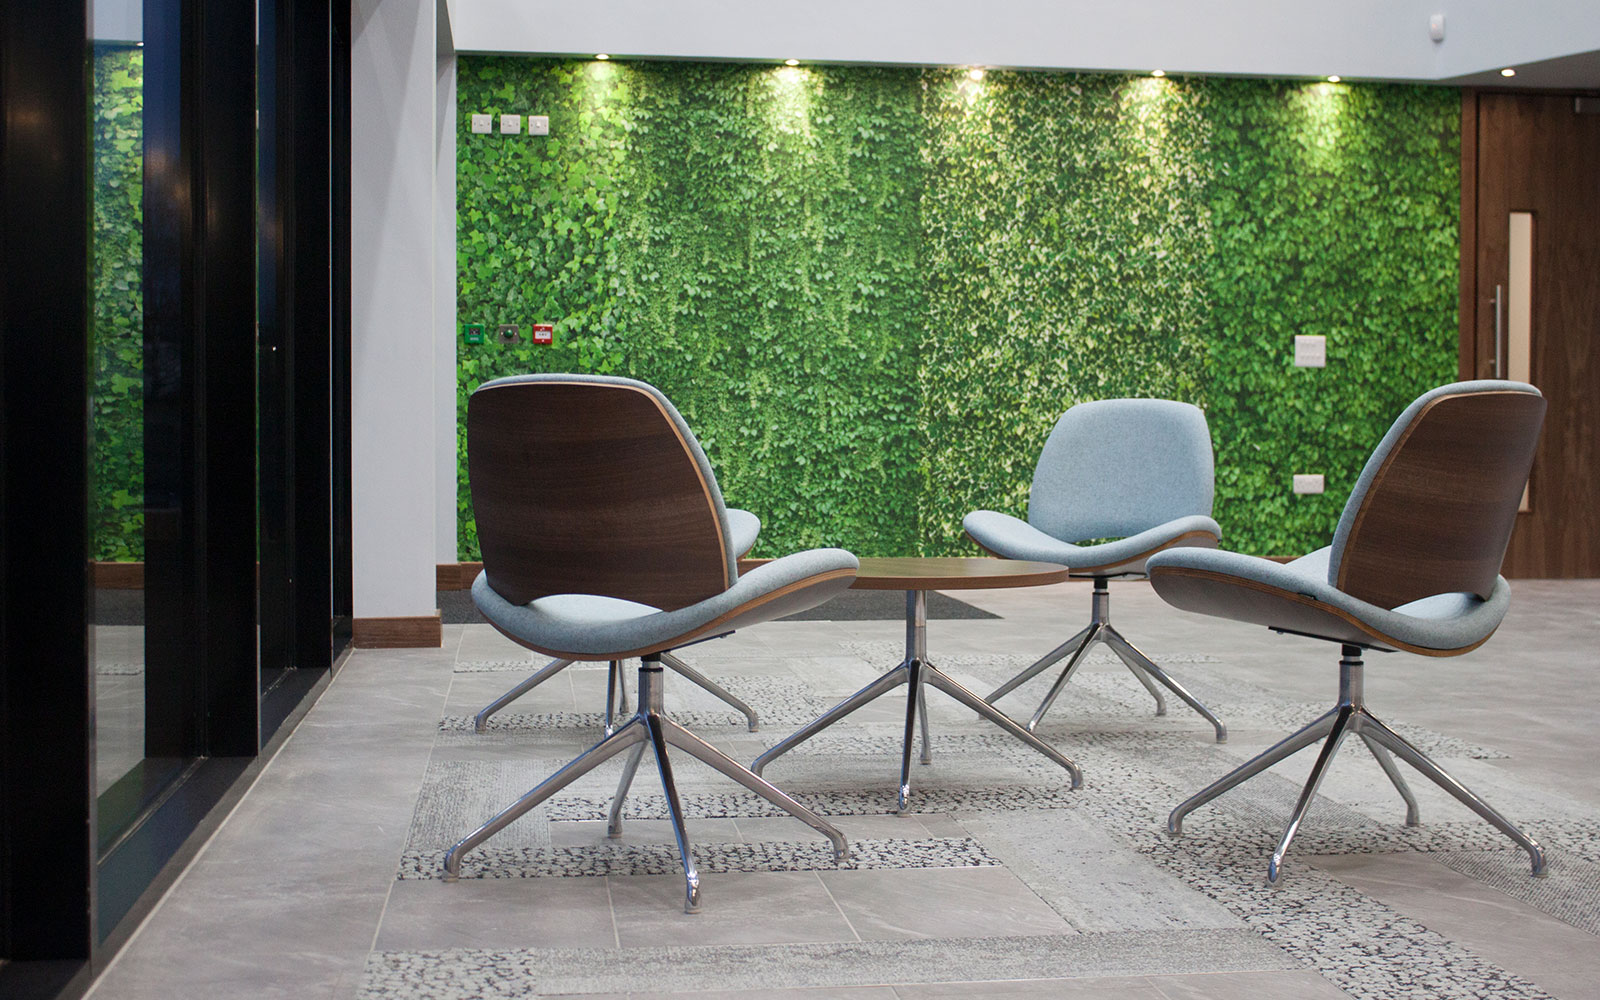 office design and staff wellbeing